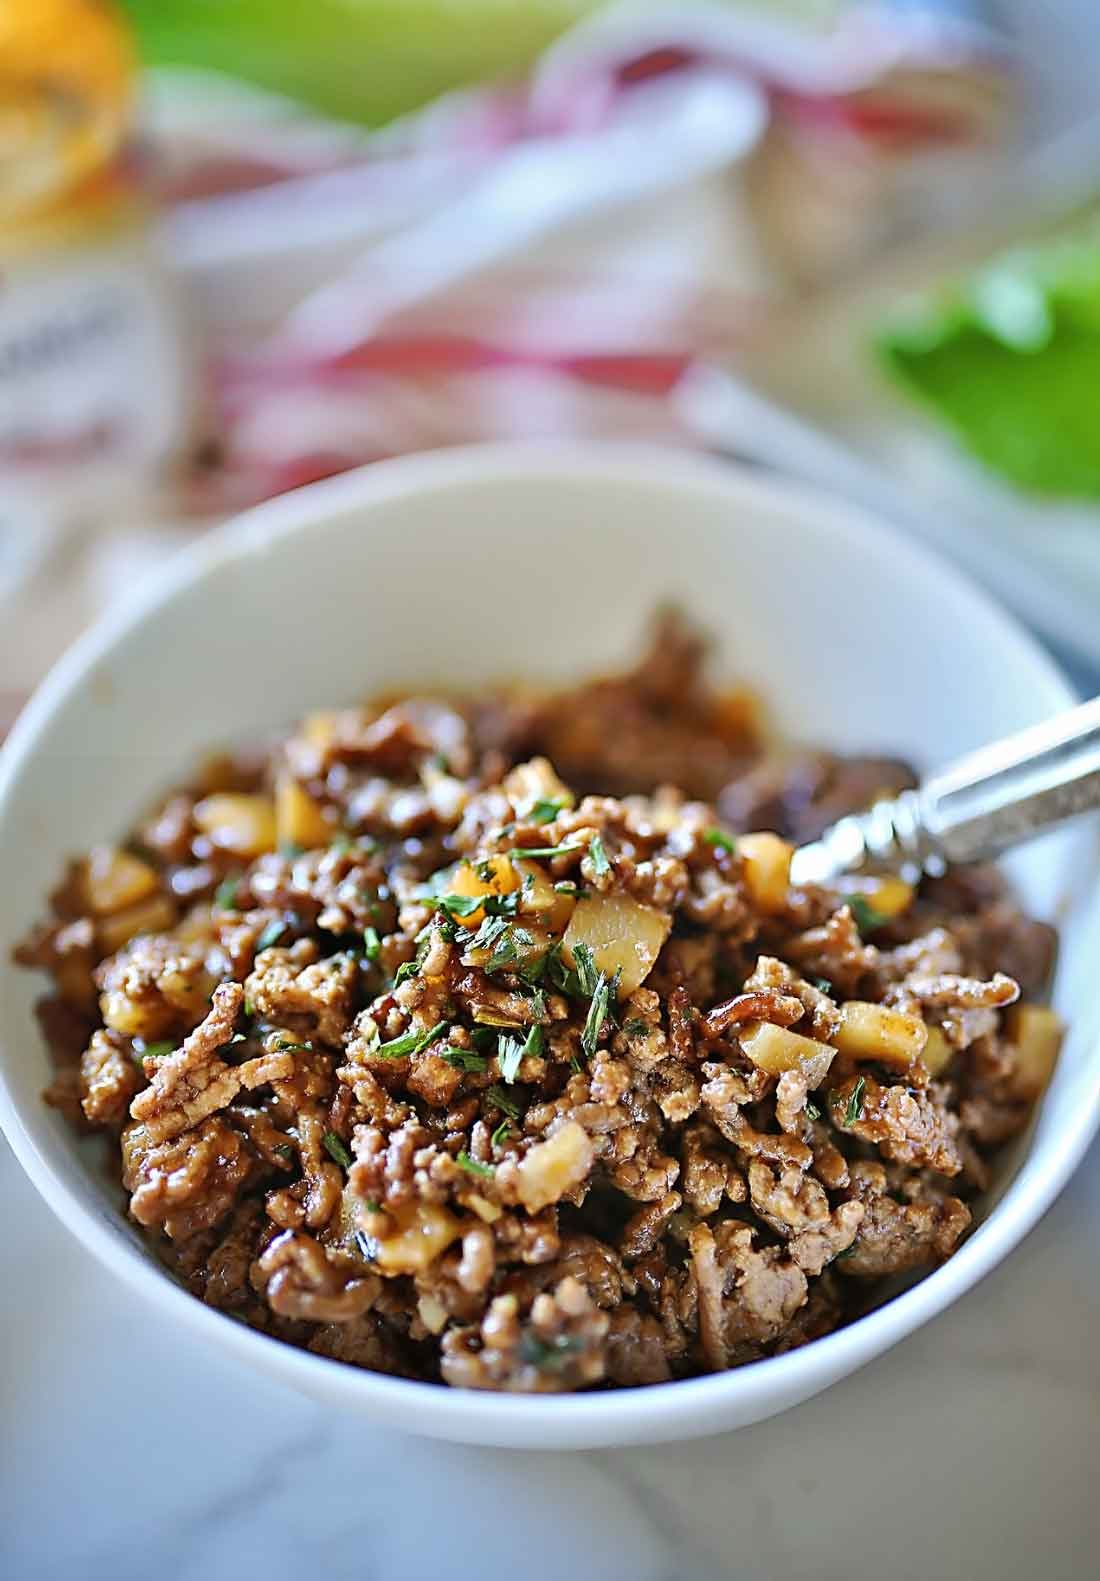 Mongolian Beef recipe that is quick, easy, and delicious!